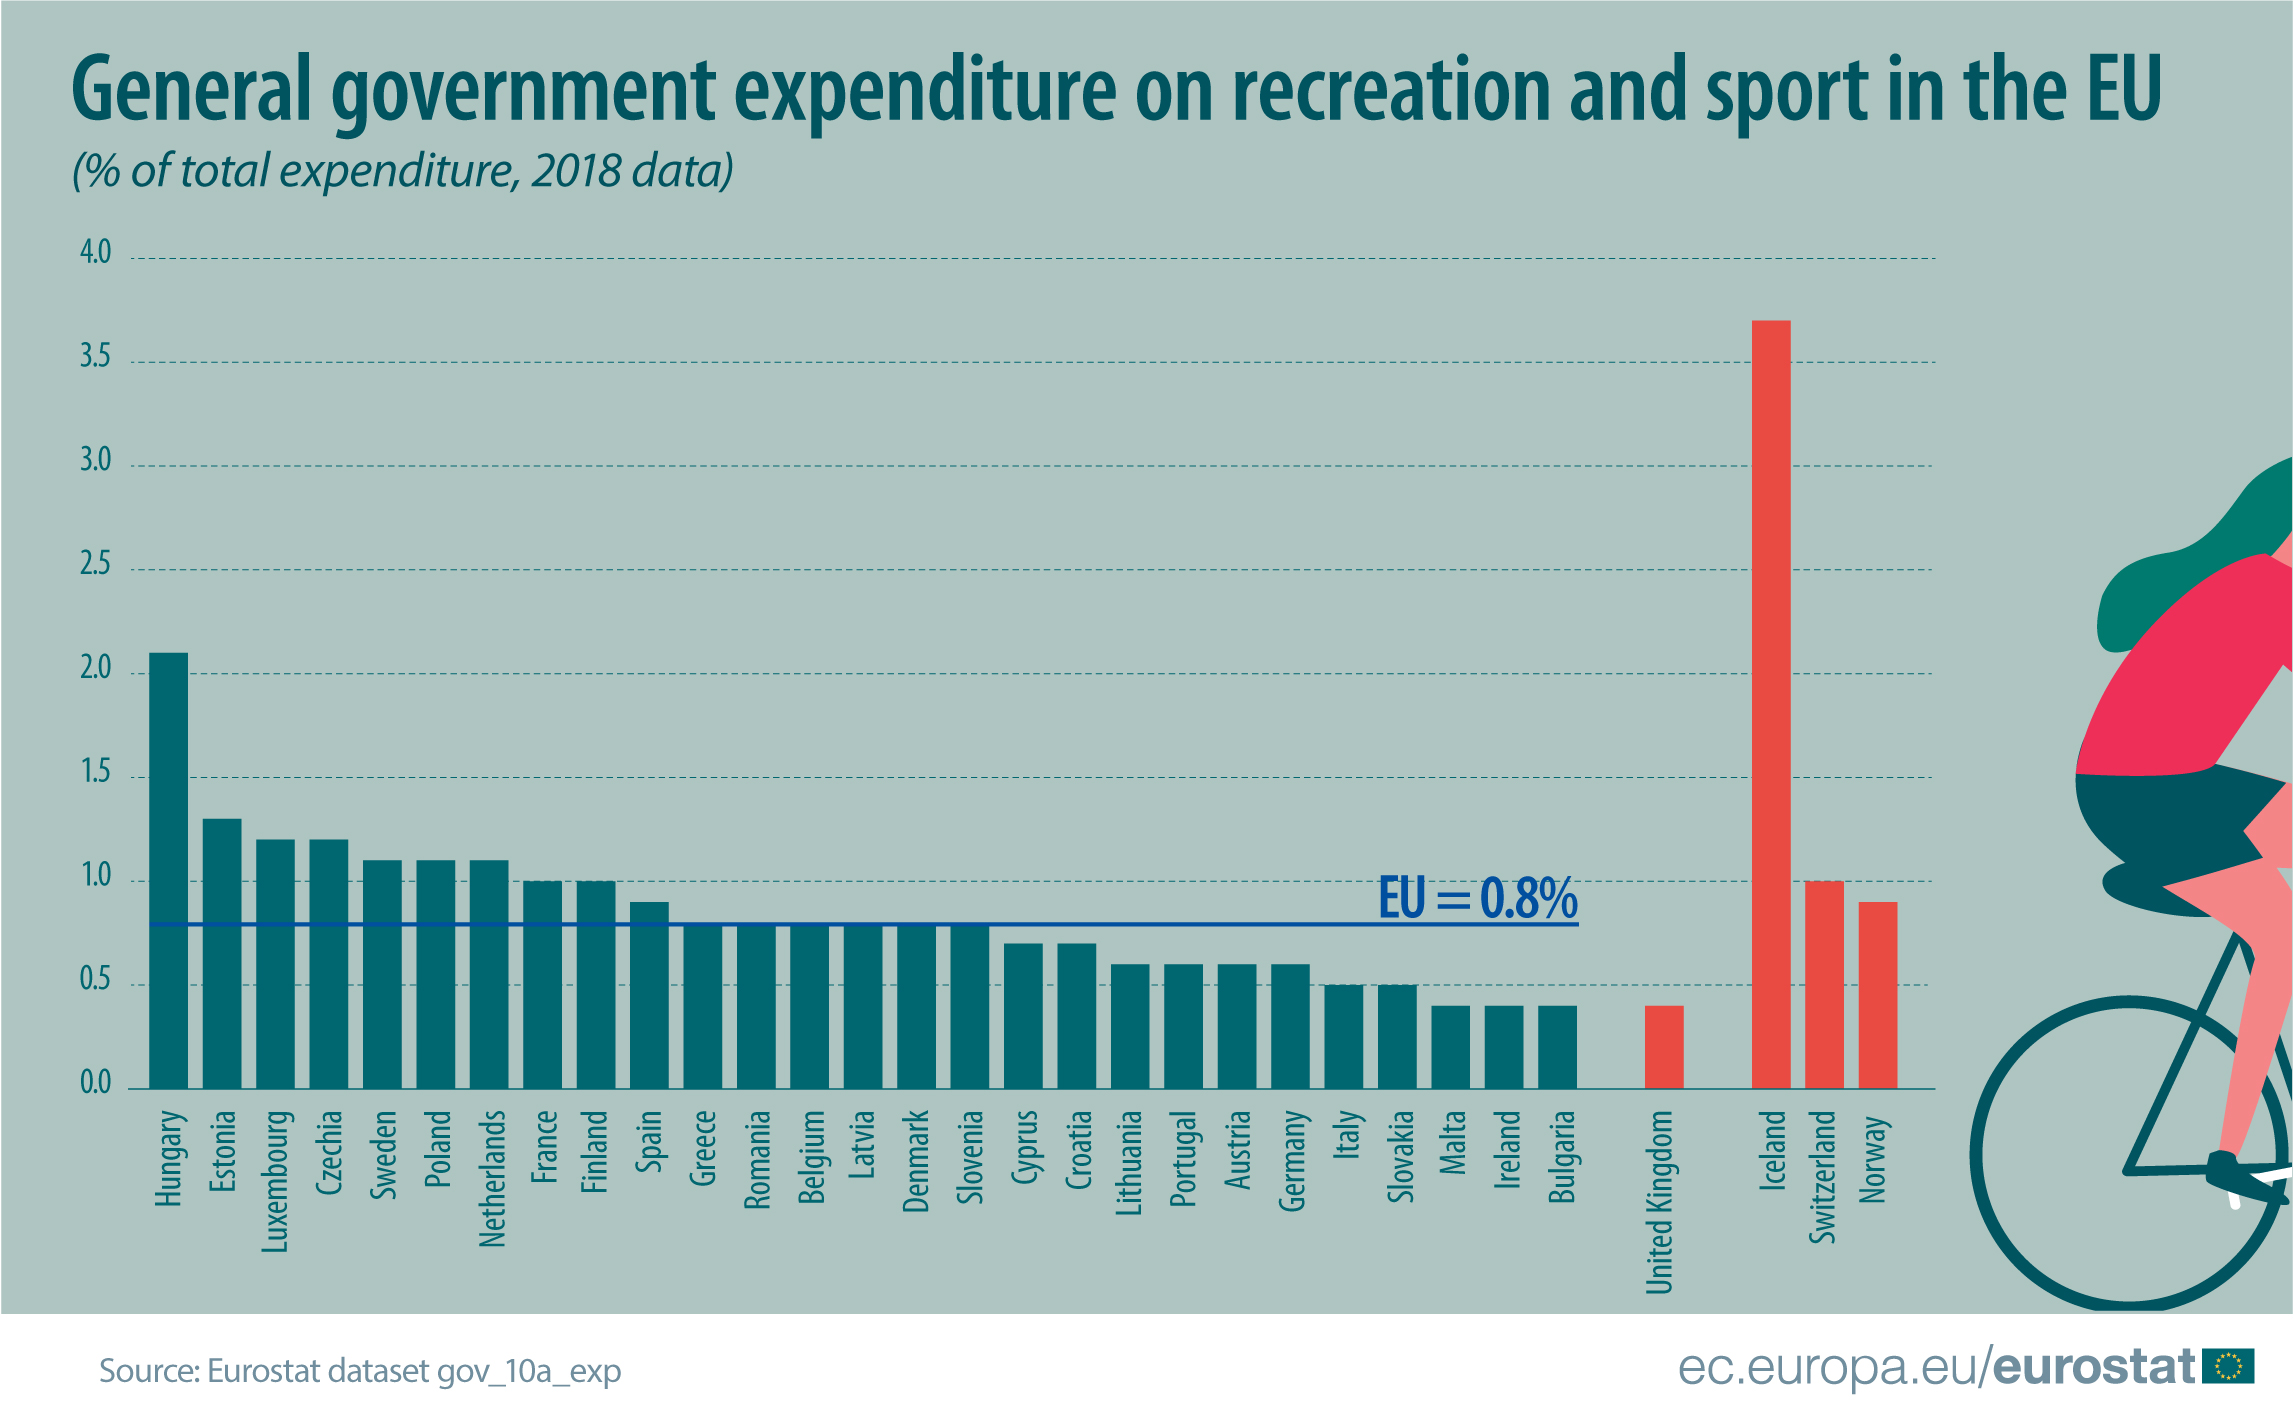 Ratio of government recreation and sport expenditure to total expenditure in 2018.